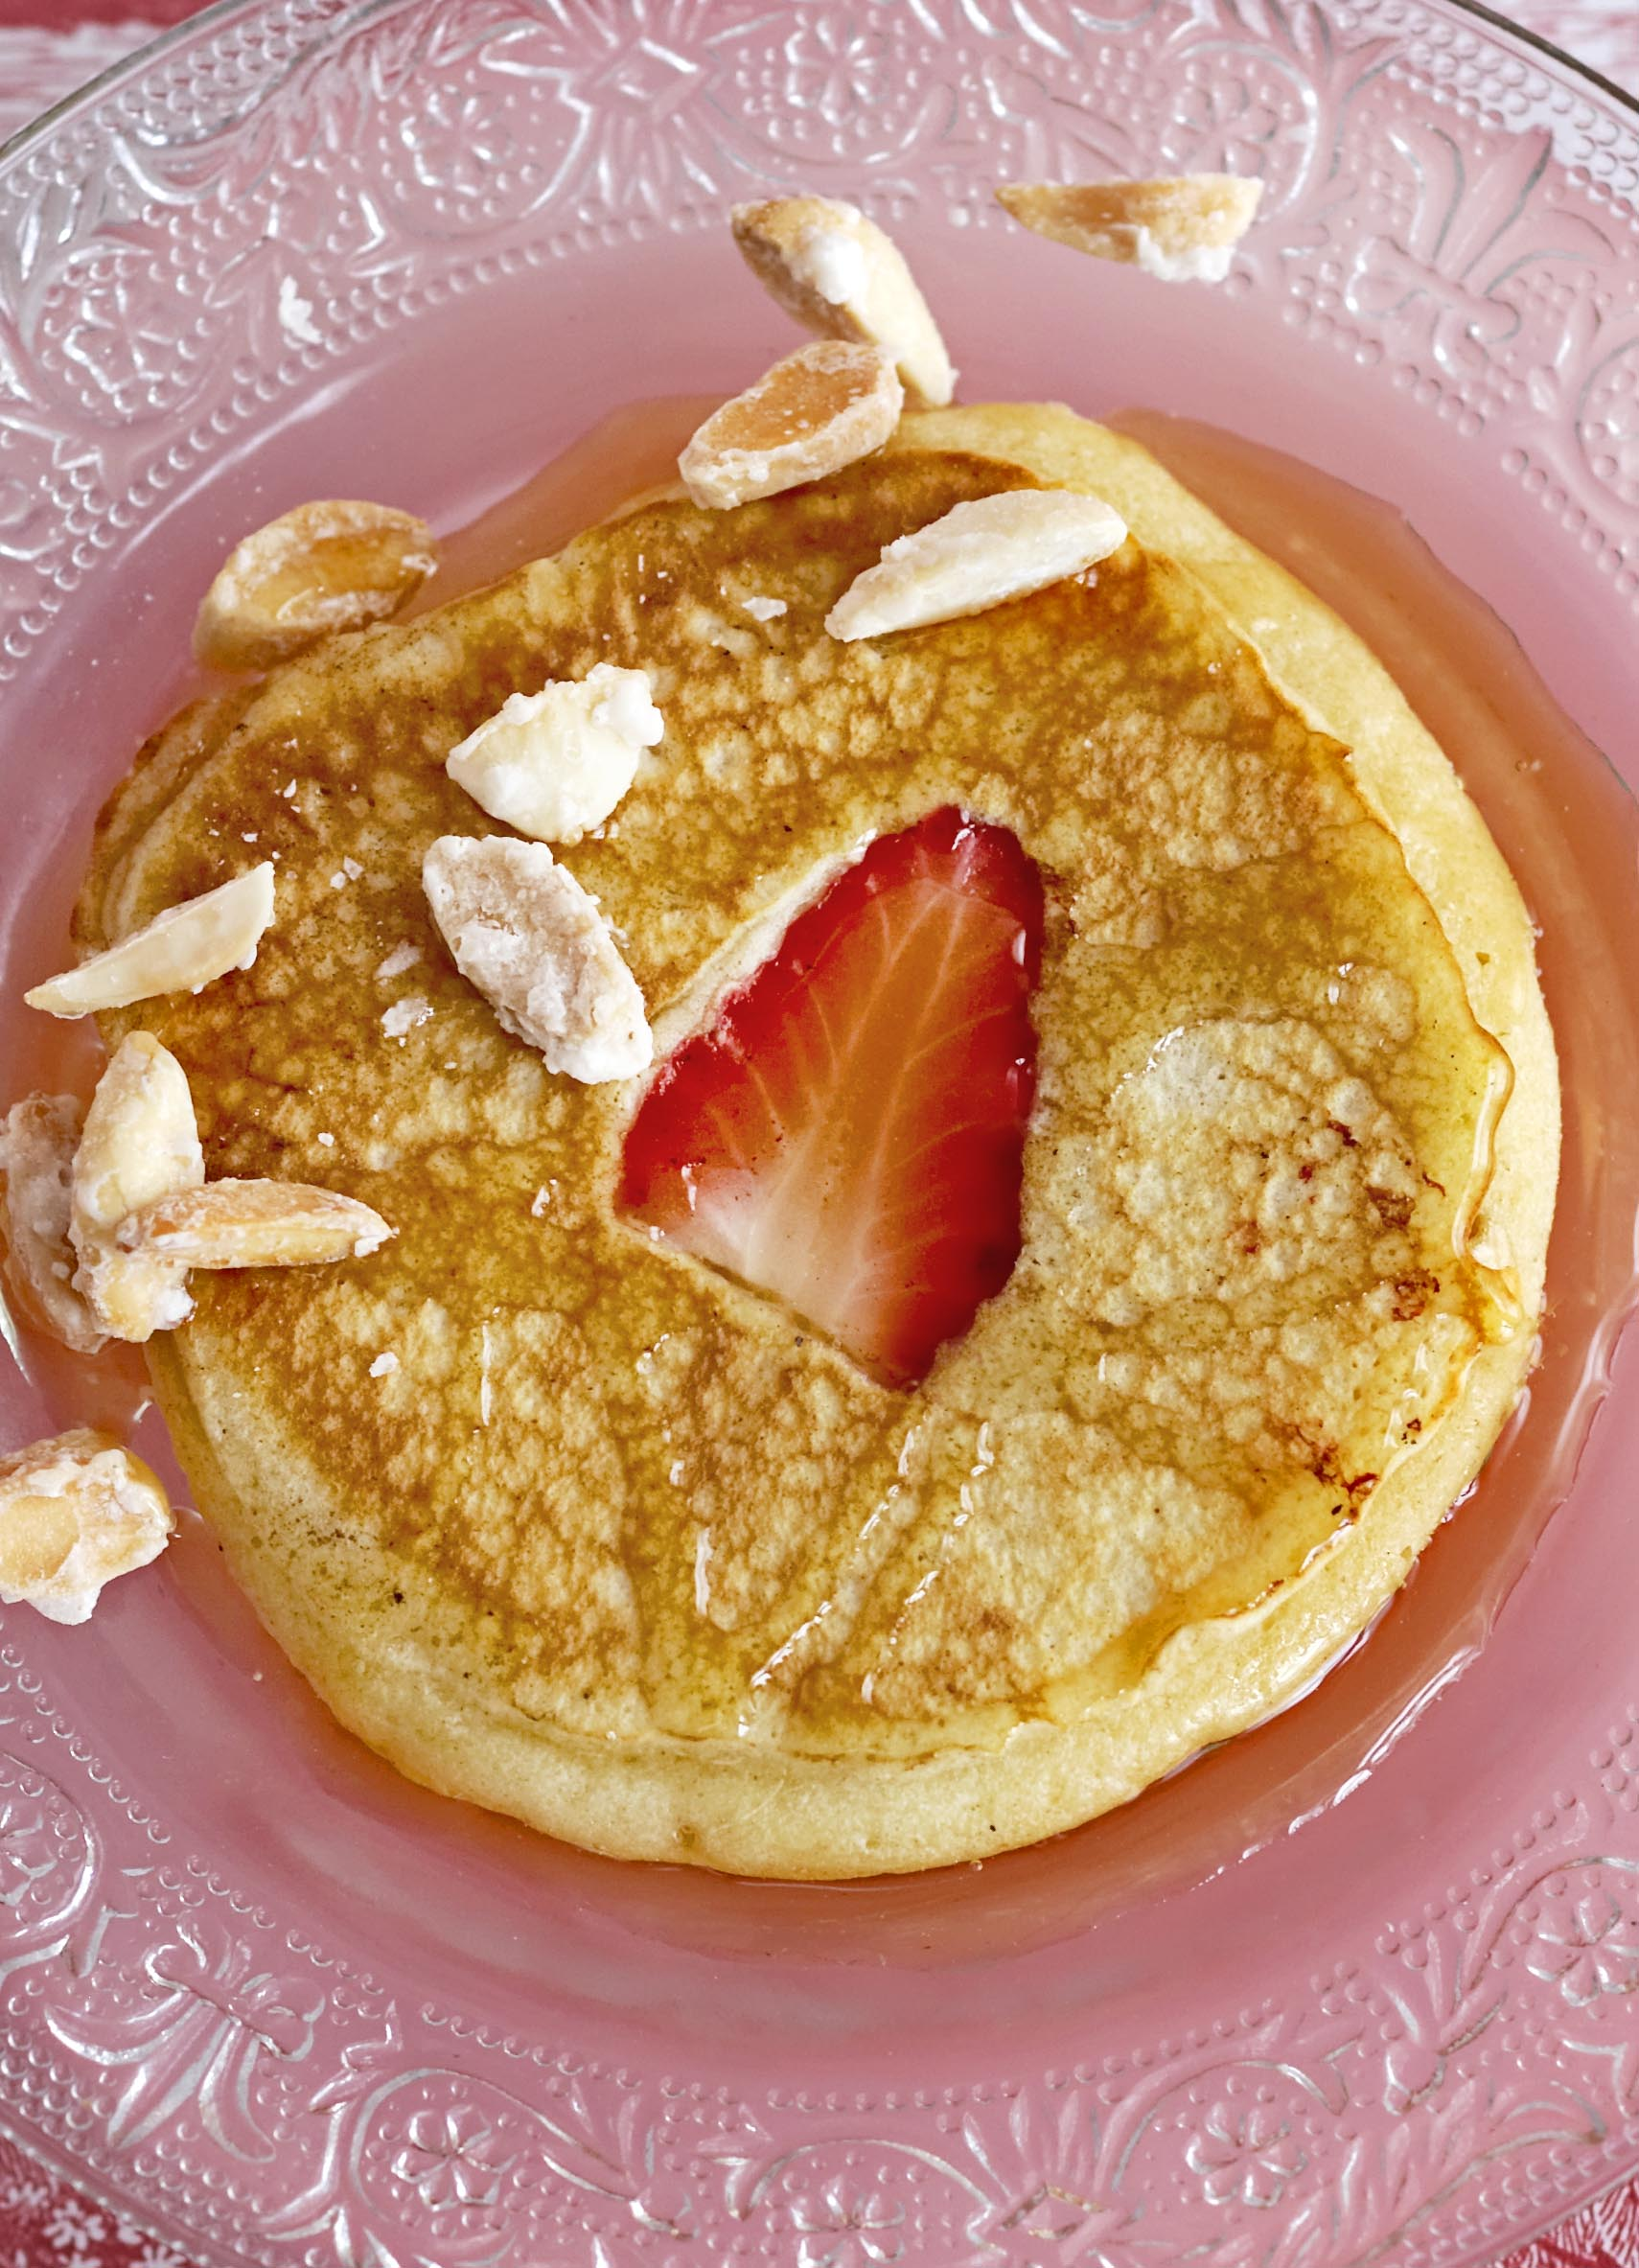 Strawberry pancakes with amaretto syrup and sugared almonds